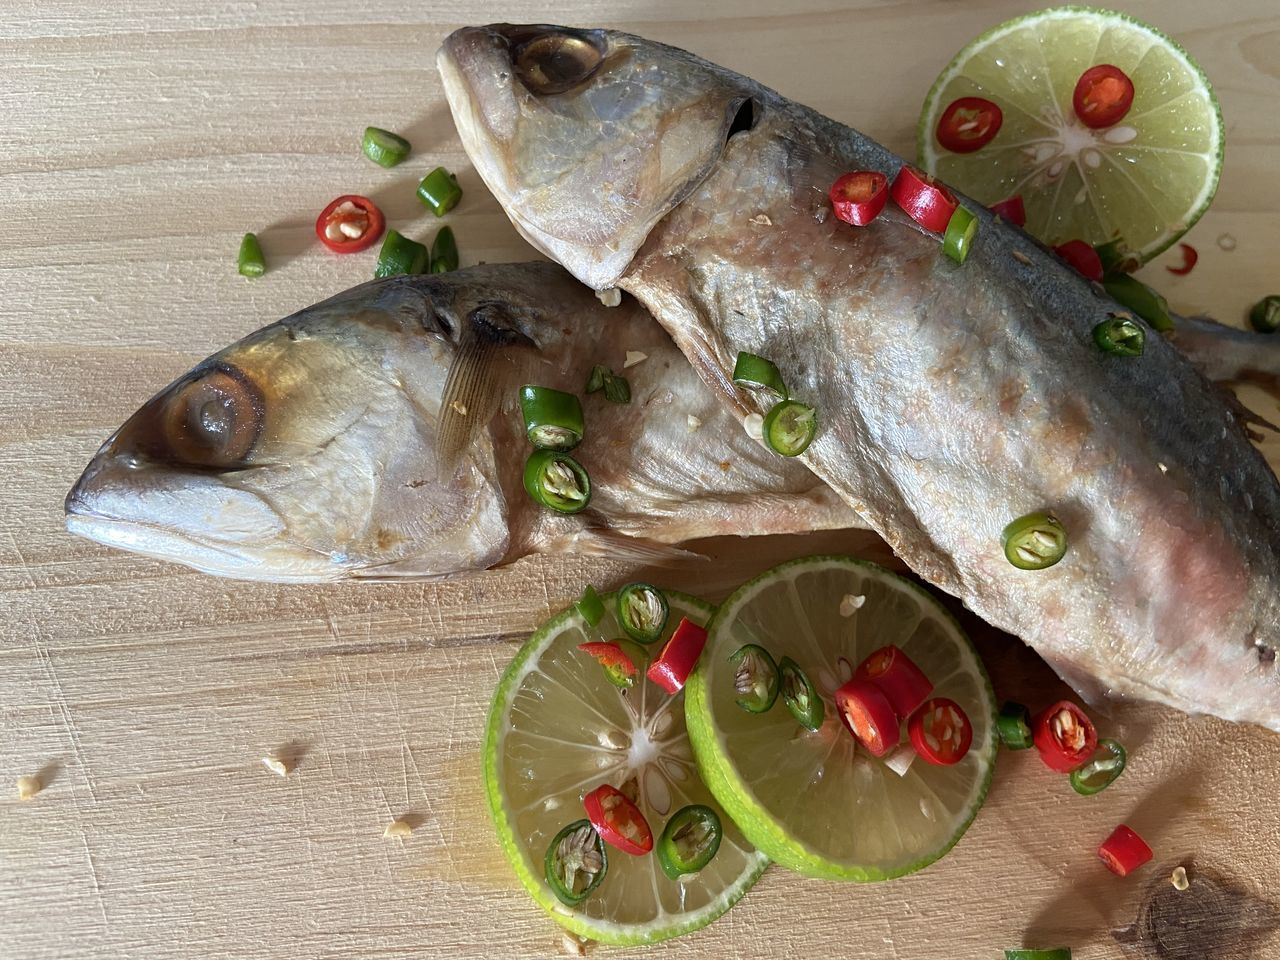 HIGH ANGLE VIEW OF FISH IN PLATE